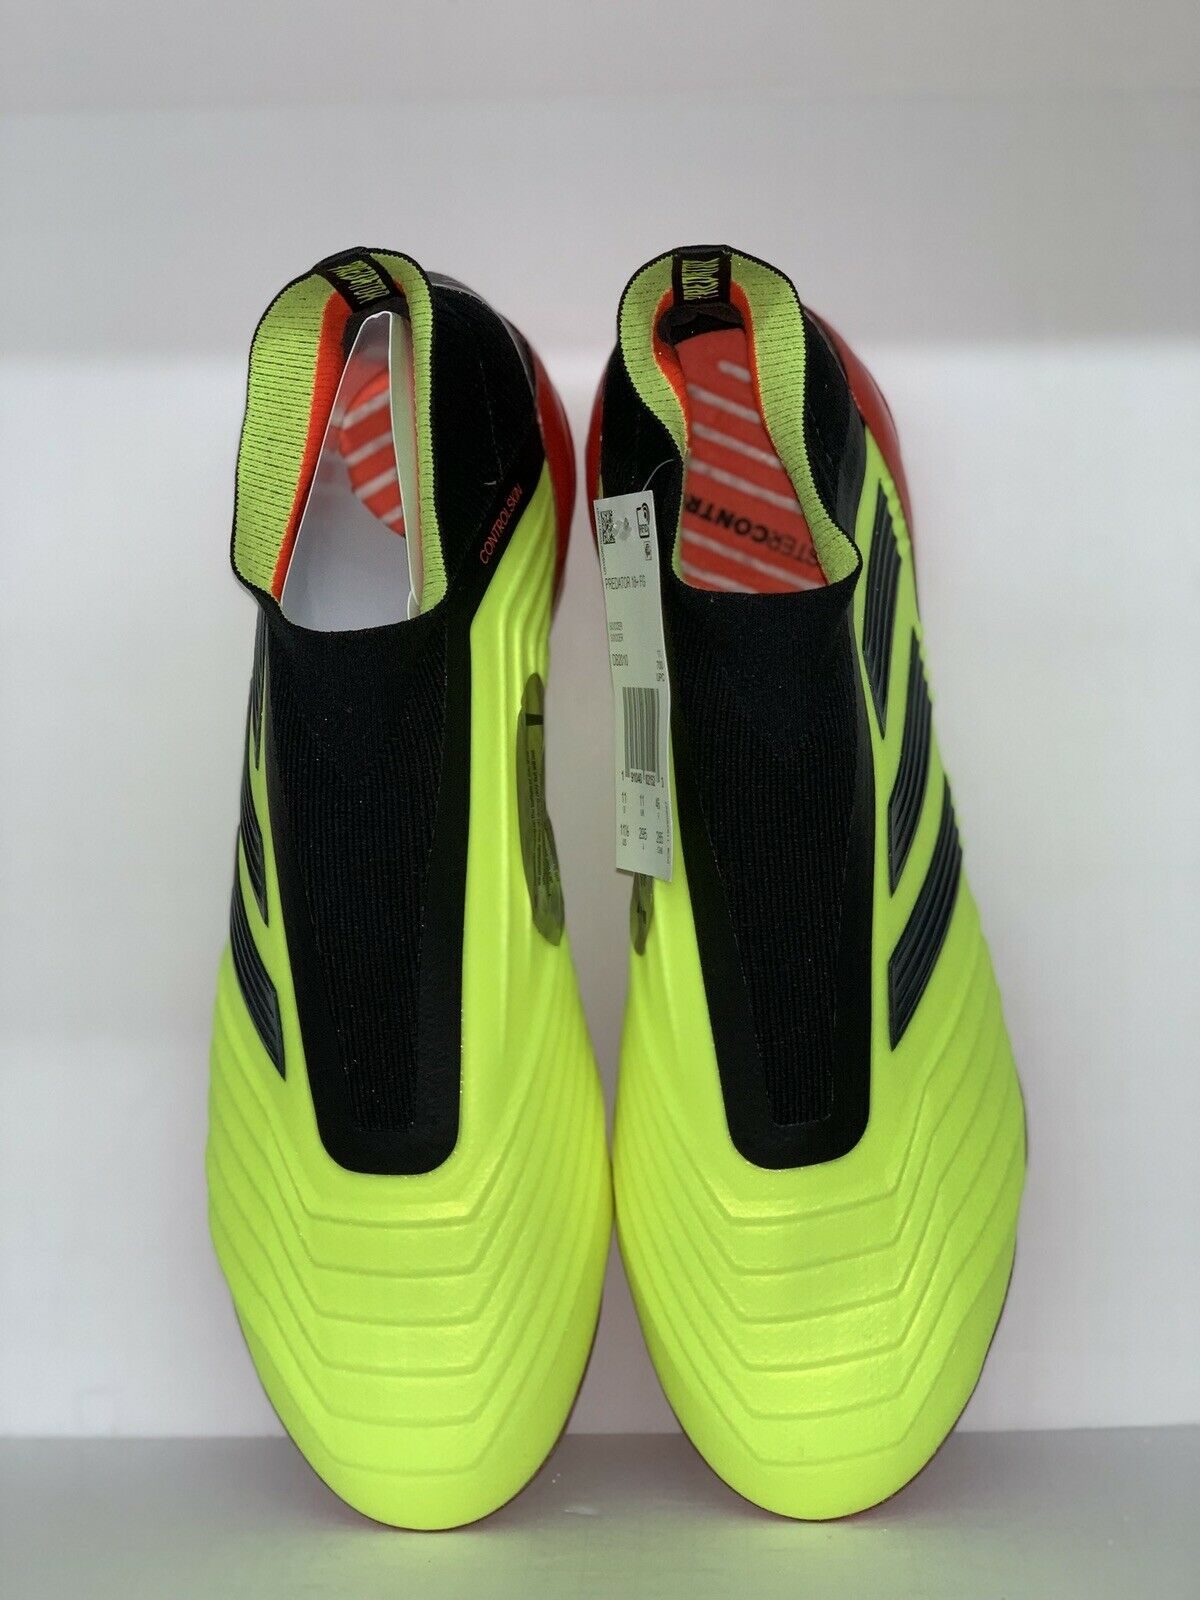 Adidas Preator 18+ FG Men's Soccer Cleats Football shoes DB2010 1805 Size 11.5